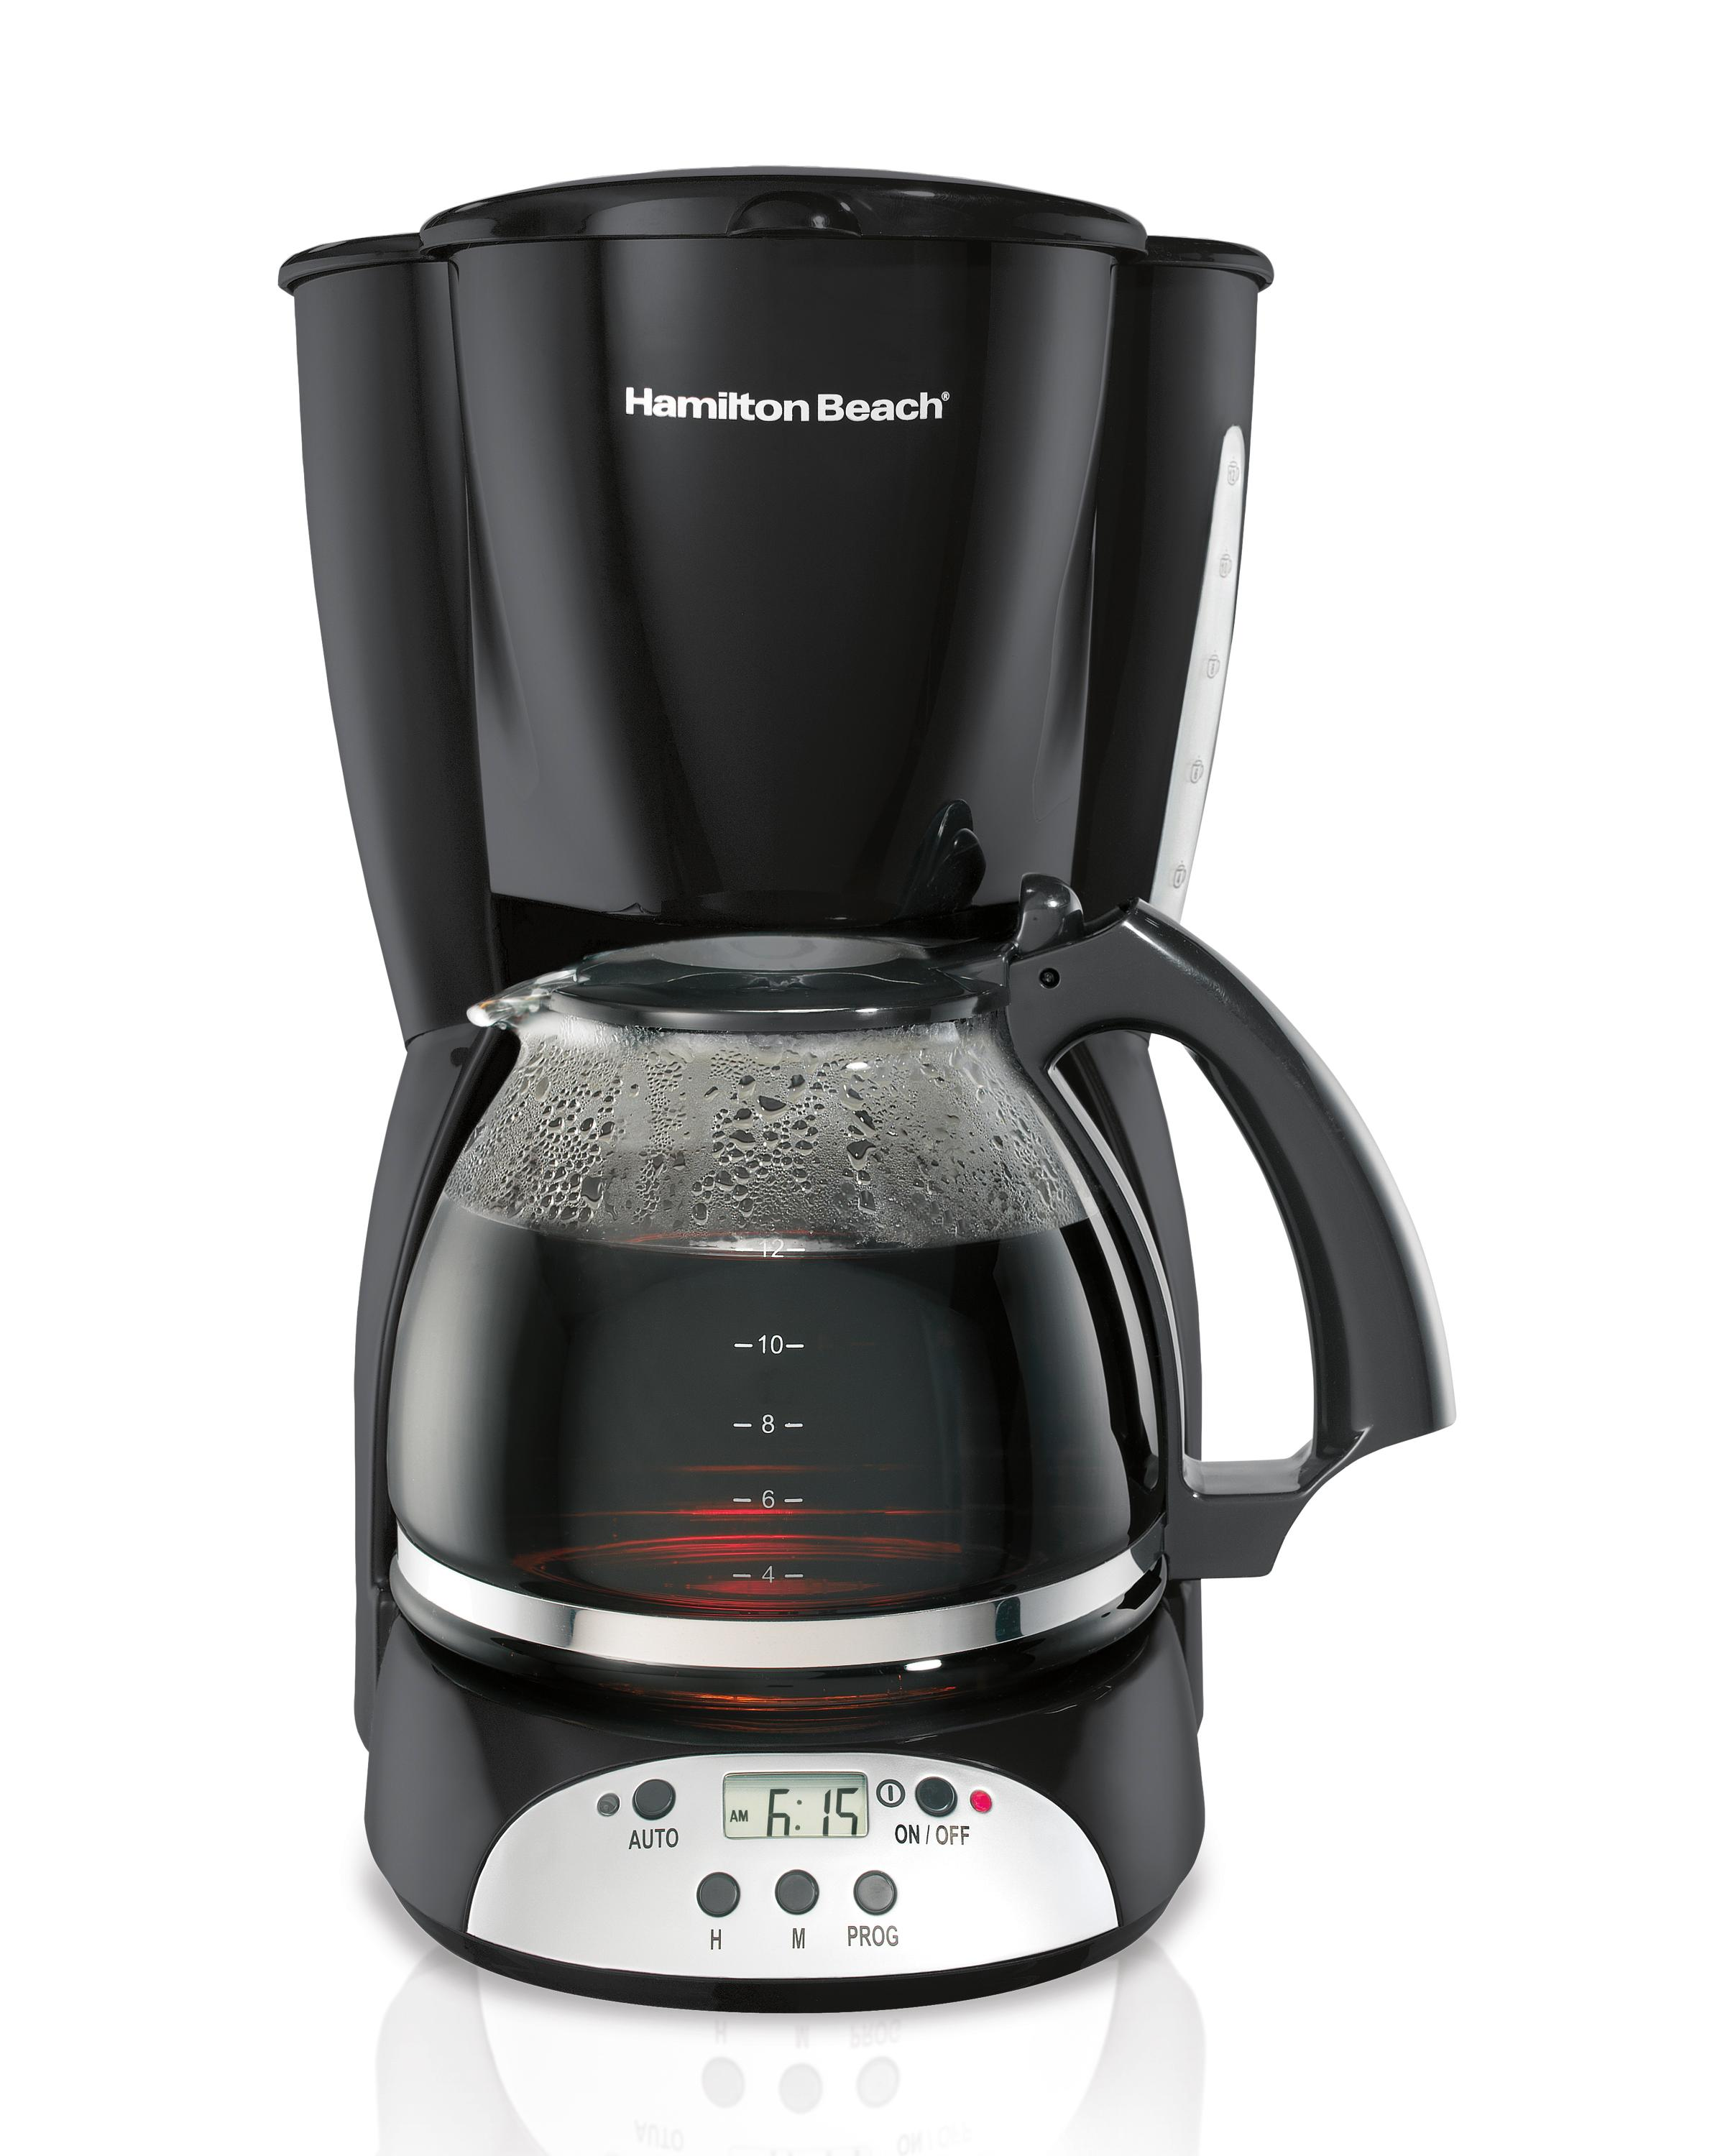 Hamilton Beach 12 Cup Coffee Maker Digital: coffee maker brands